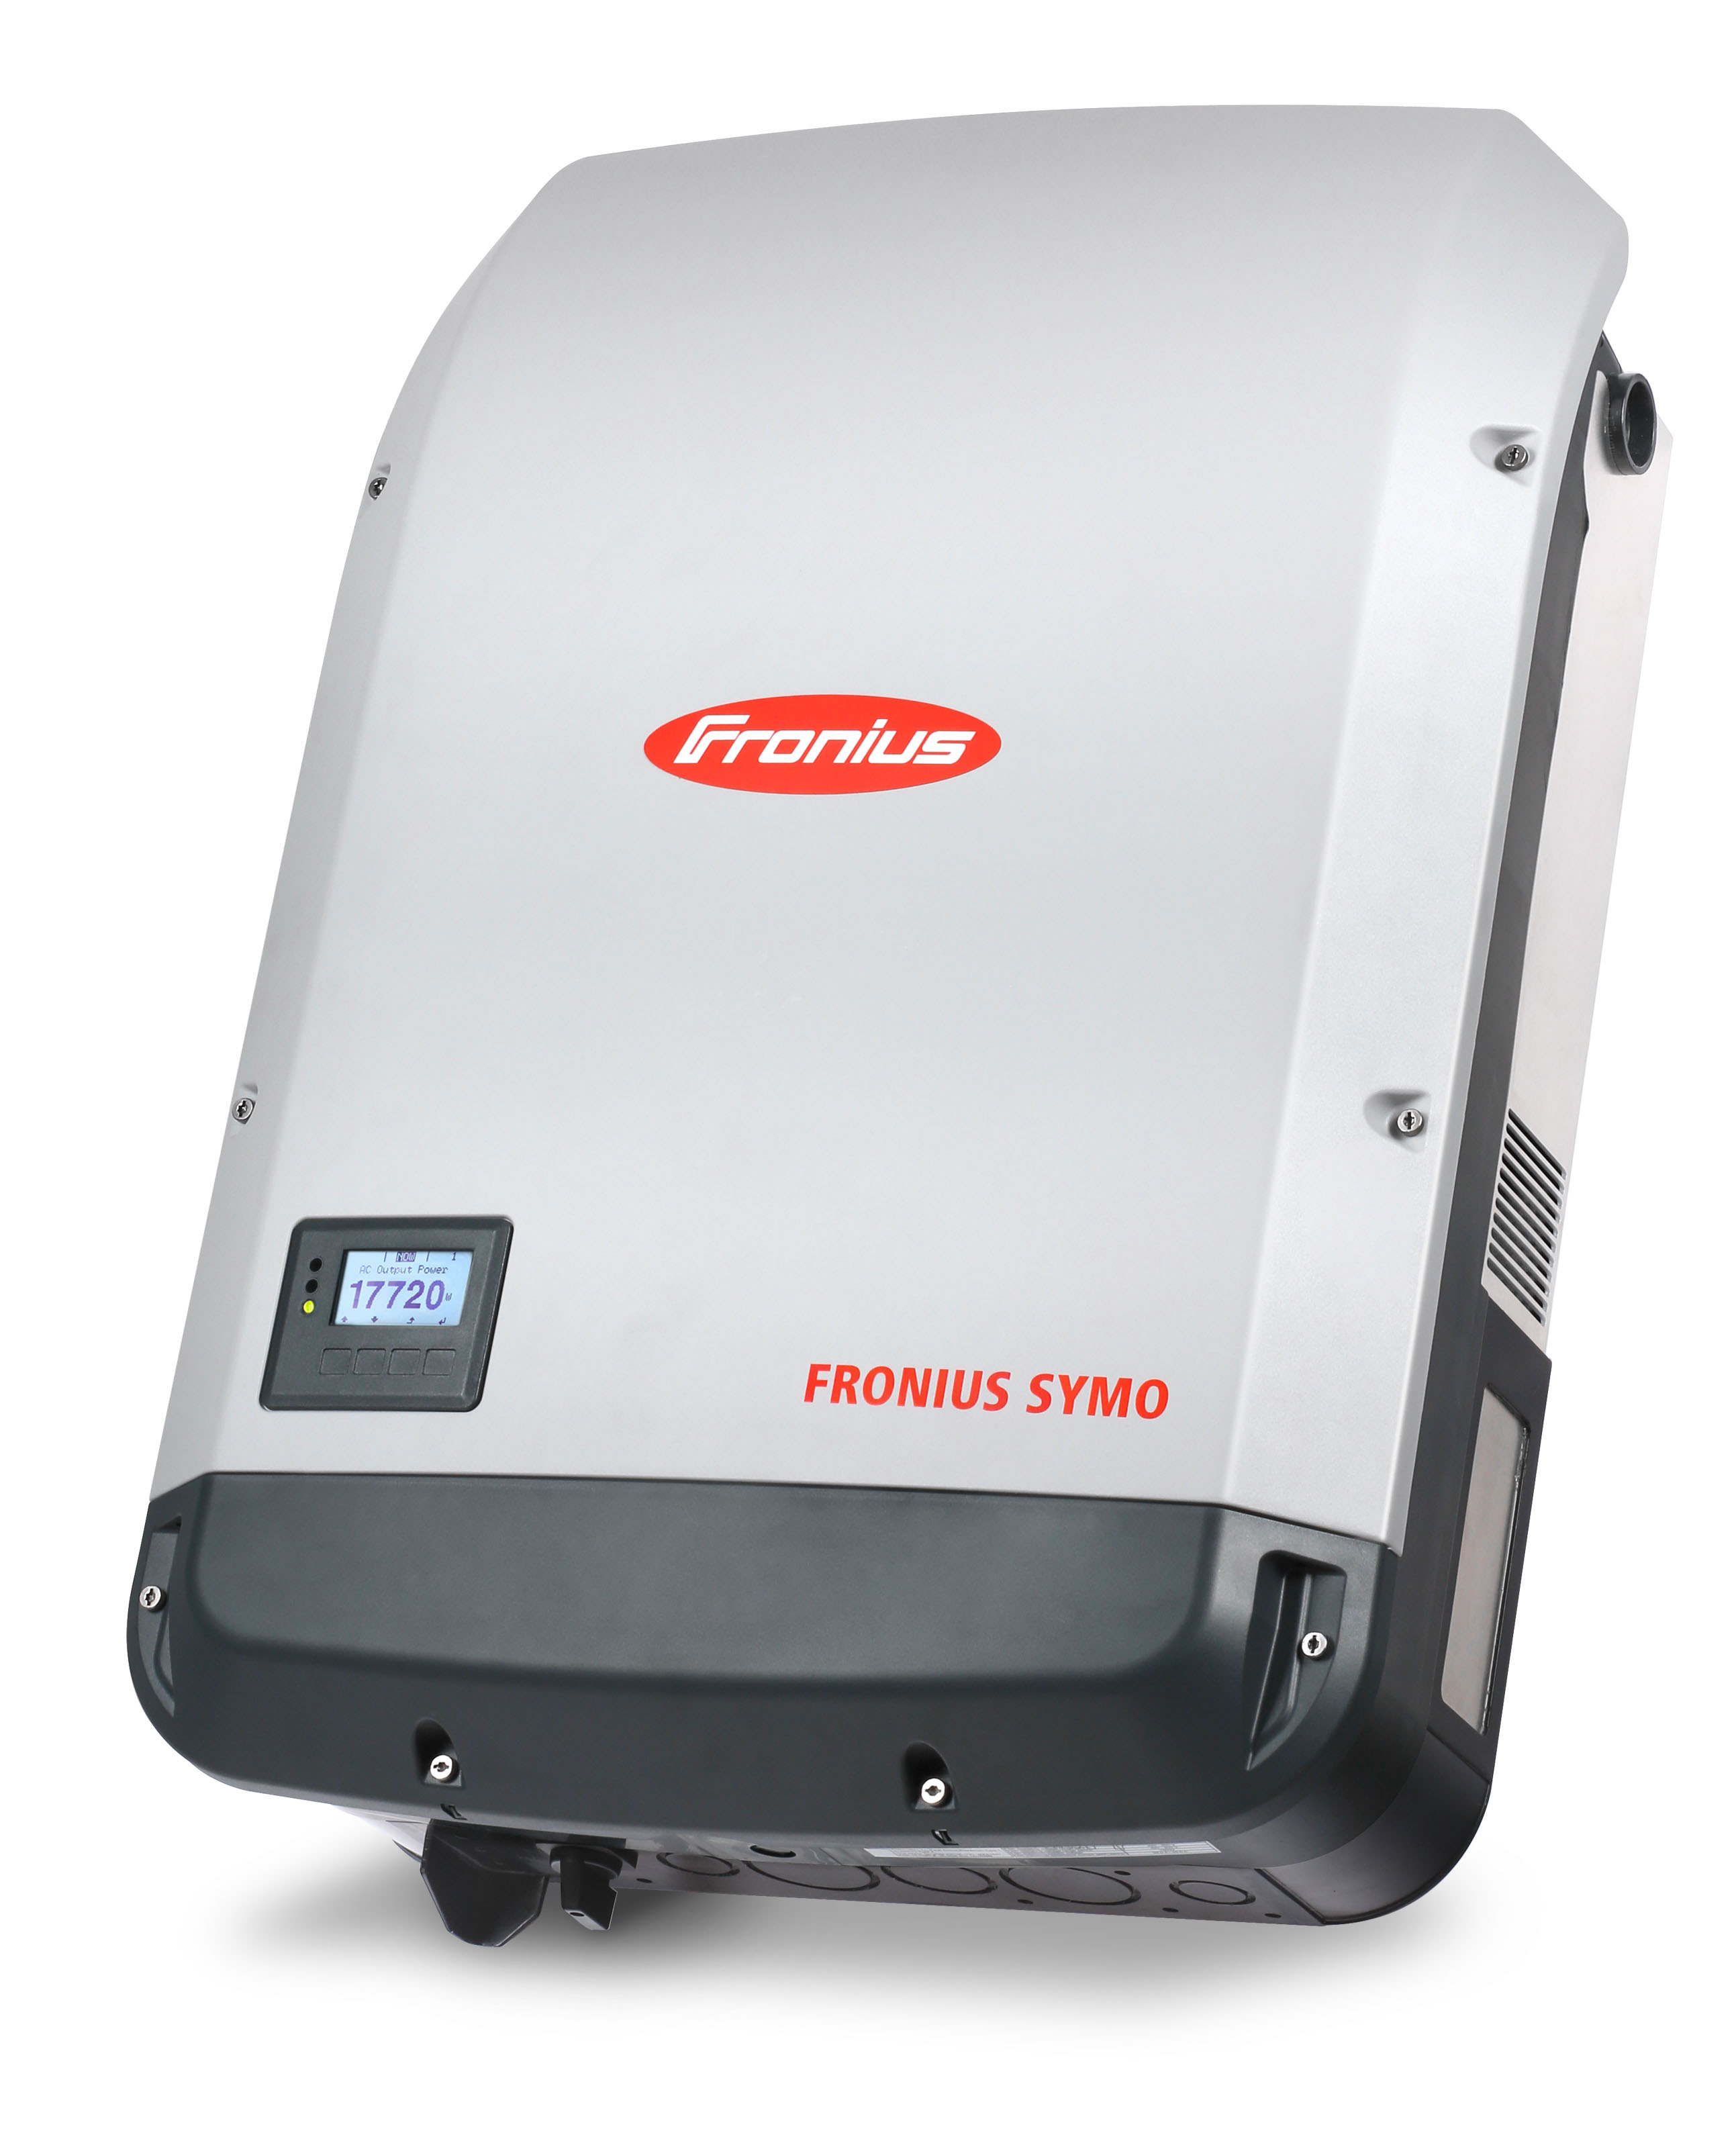 FRONIUS, SYMO 10.0-3 480, NON-ISOLATED STRING INVERTER, 10 KW, 480 VAC, LITE - NO DATAMANAGER 2.0 CARD